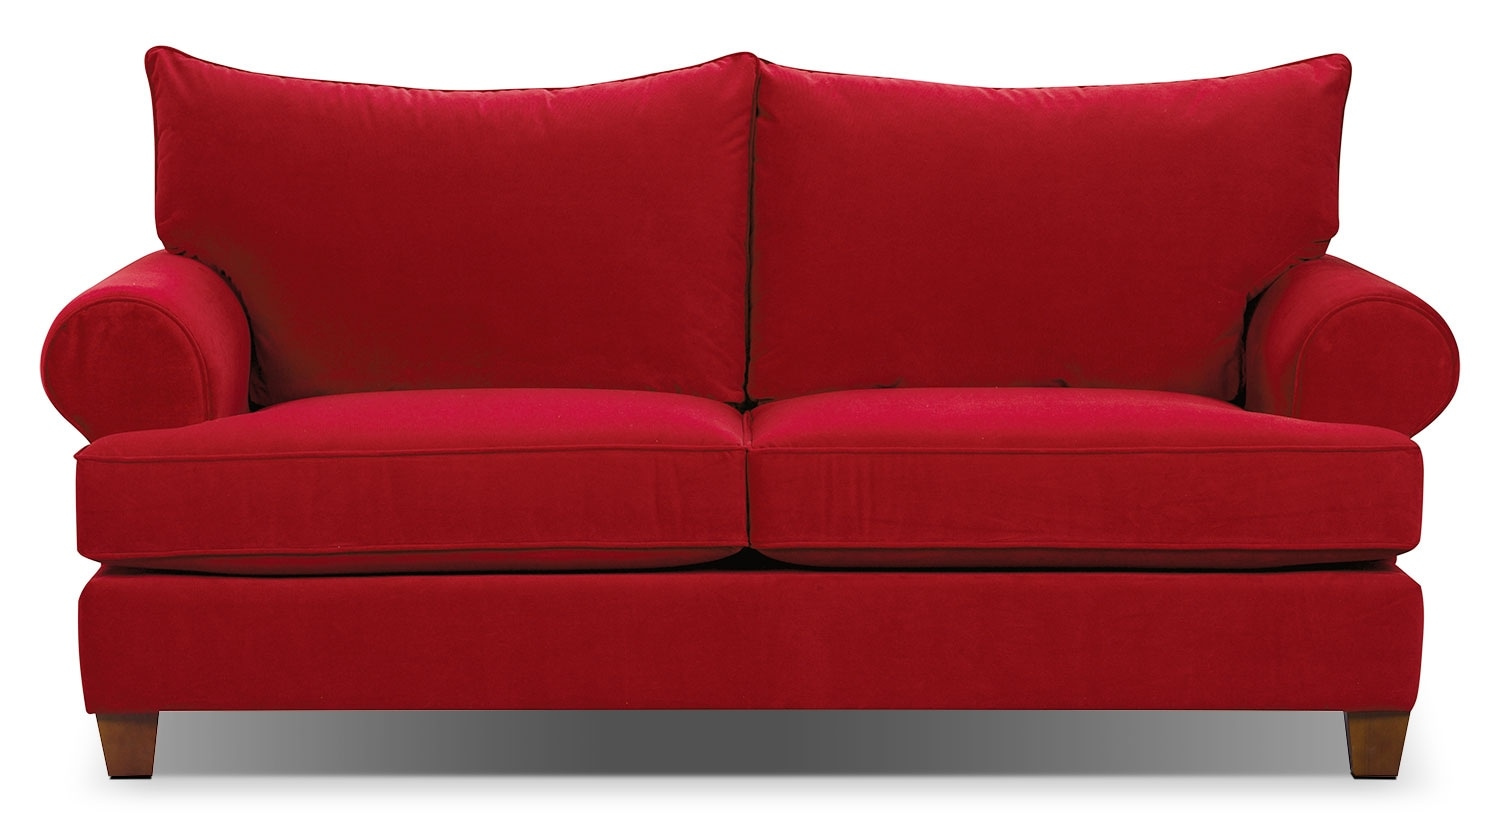 Red Suede Sofa Red Sofas Couches Fabric Microfiber More